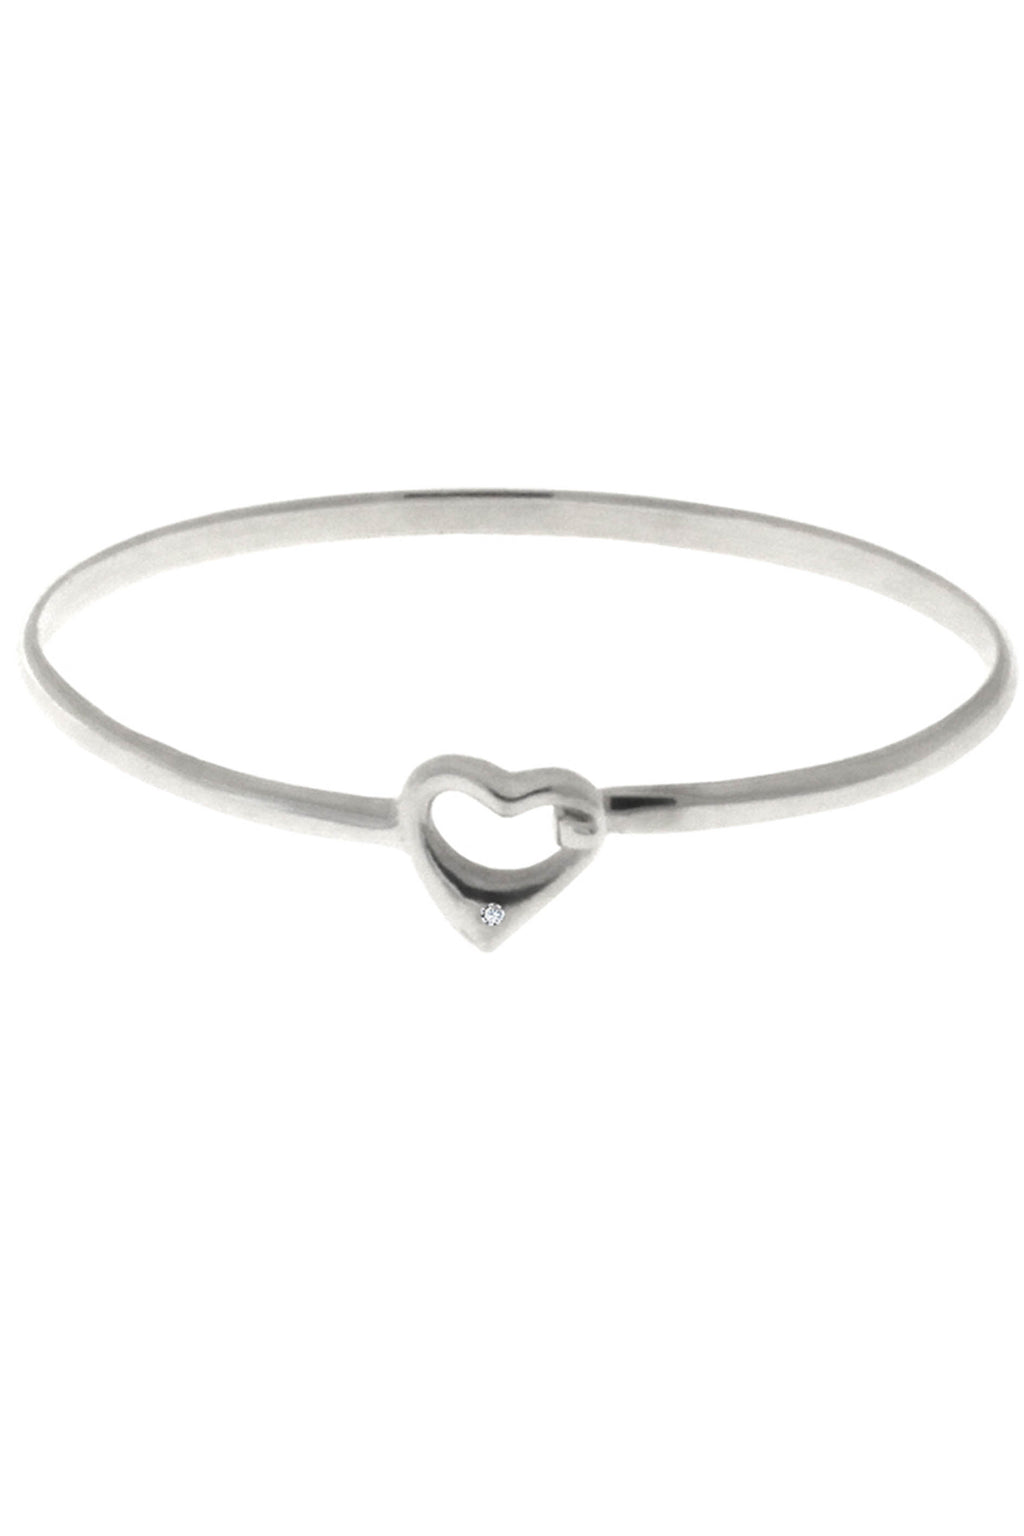 Diamond Heart Silver bangle